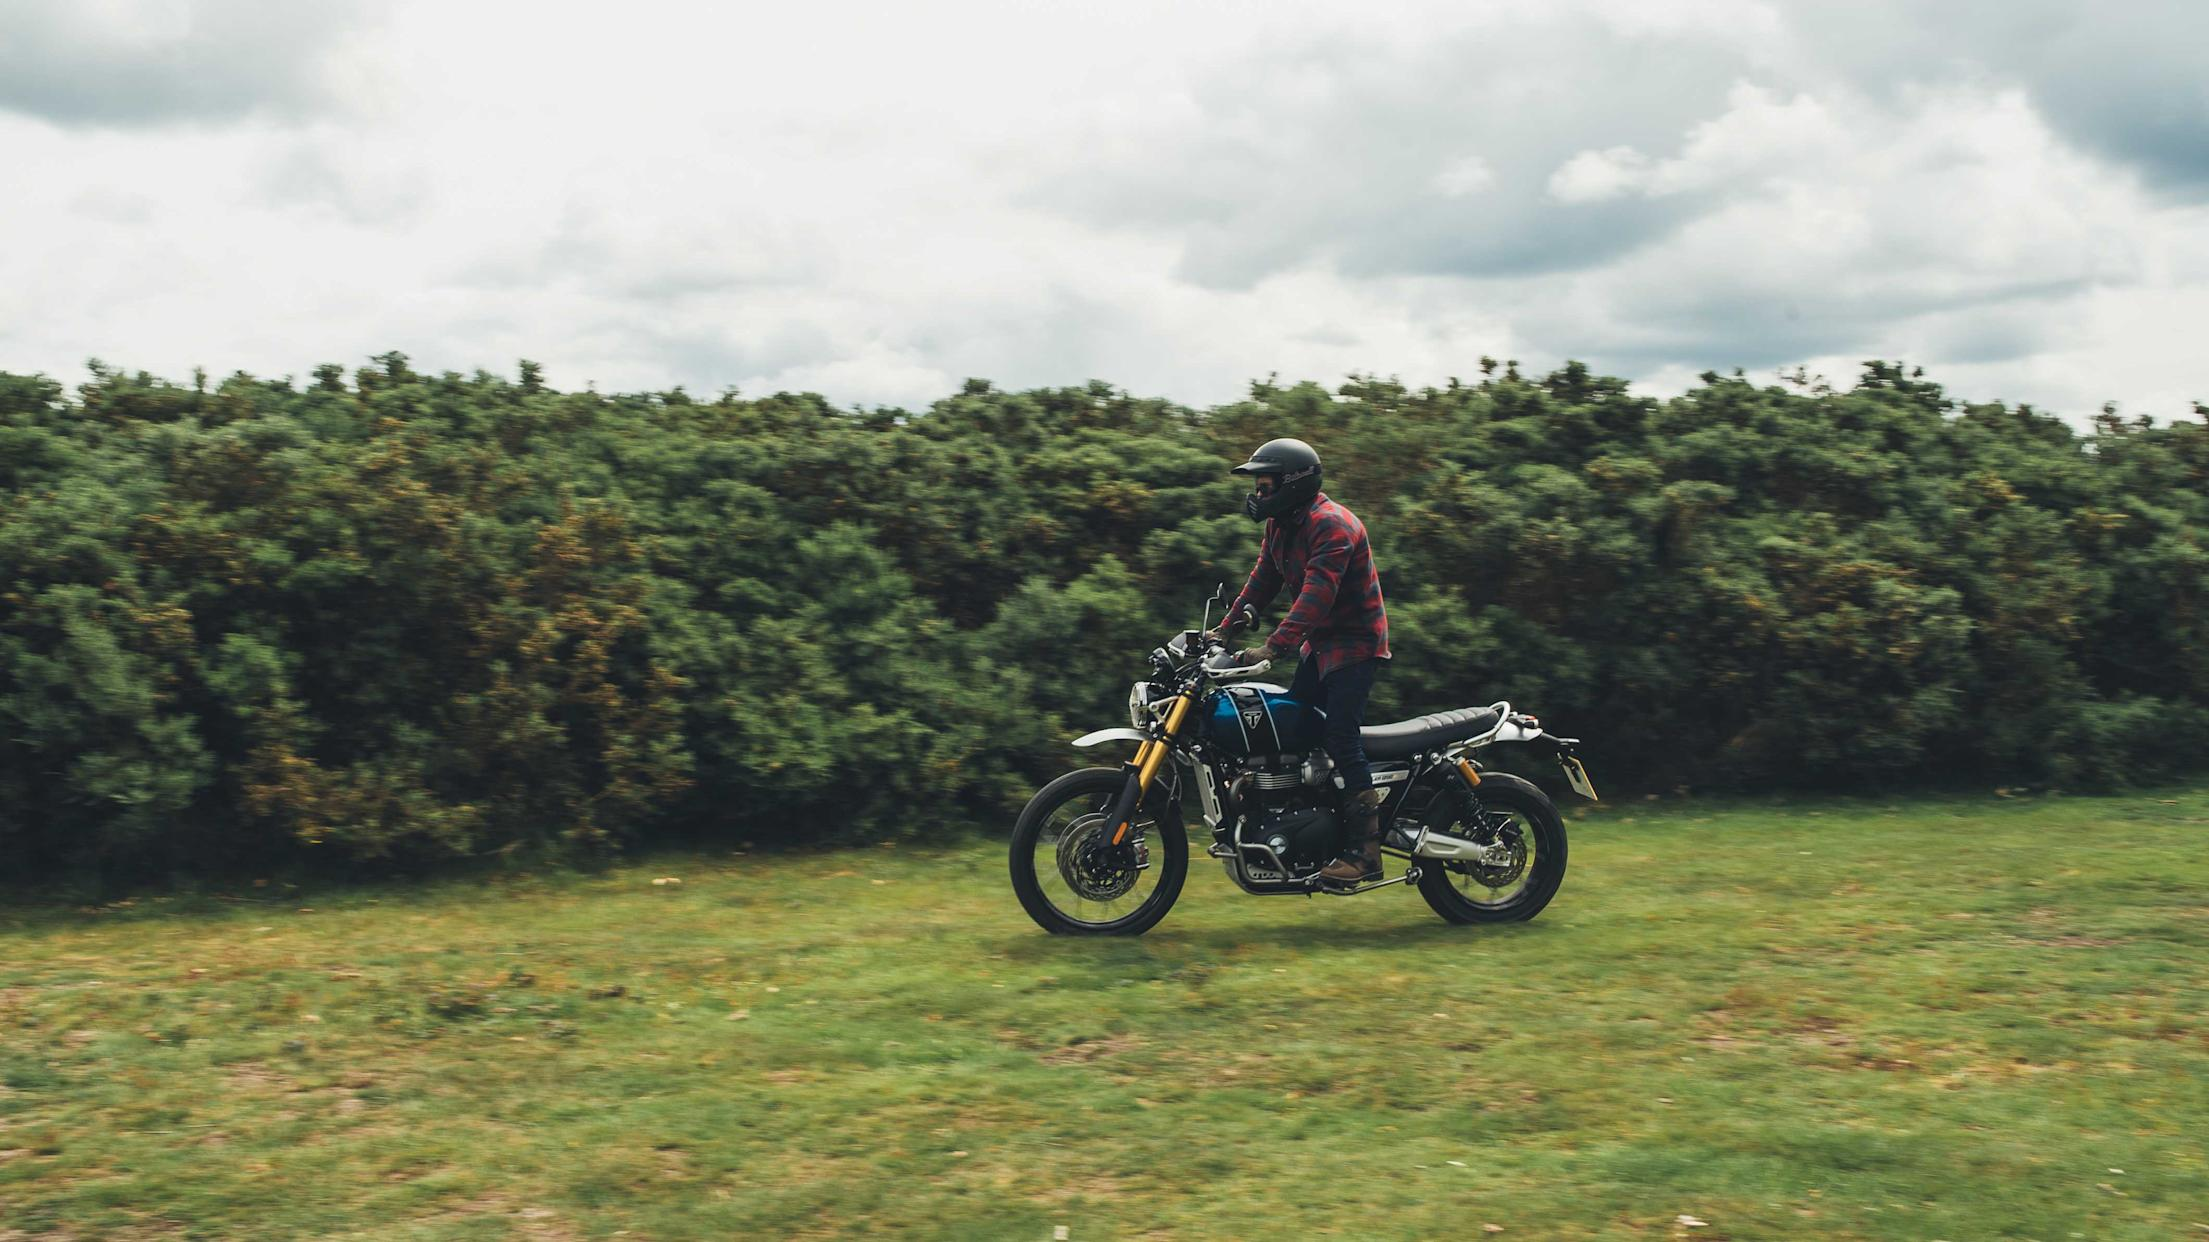 The Scrambler's upright riding position helps off road